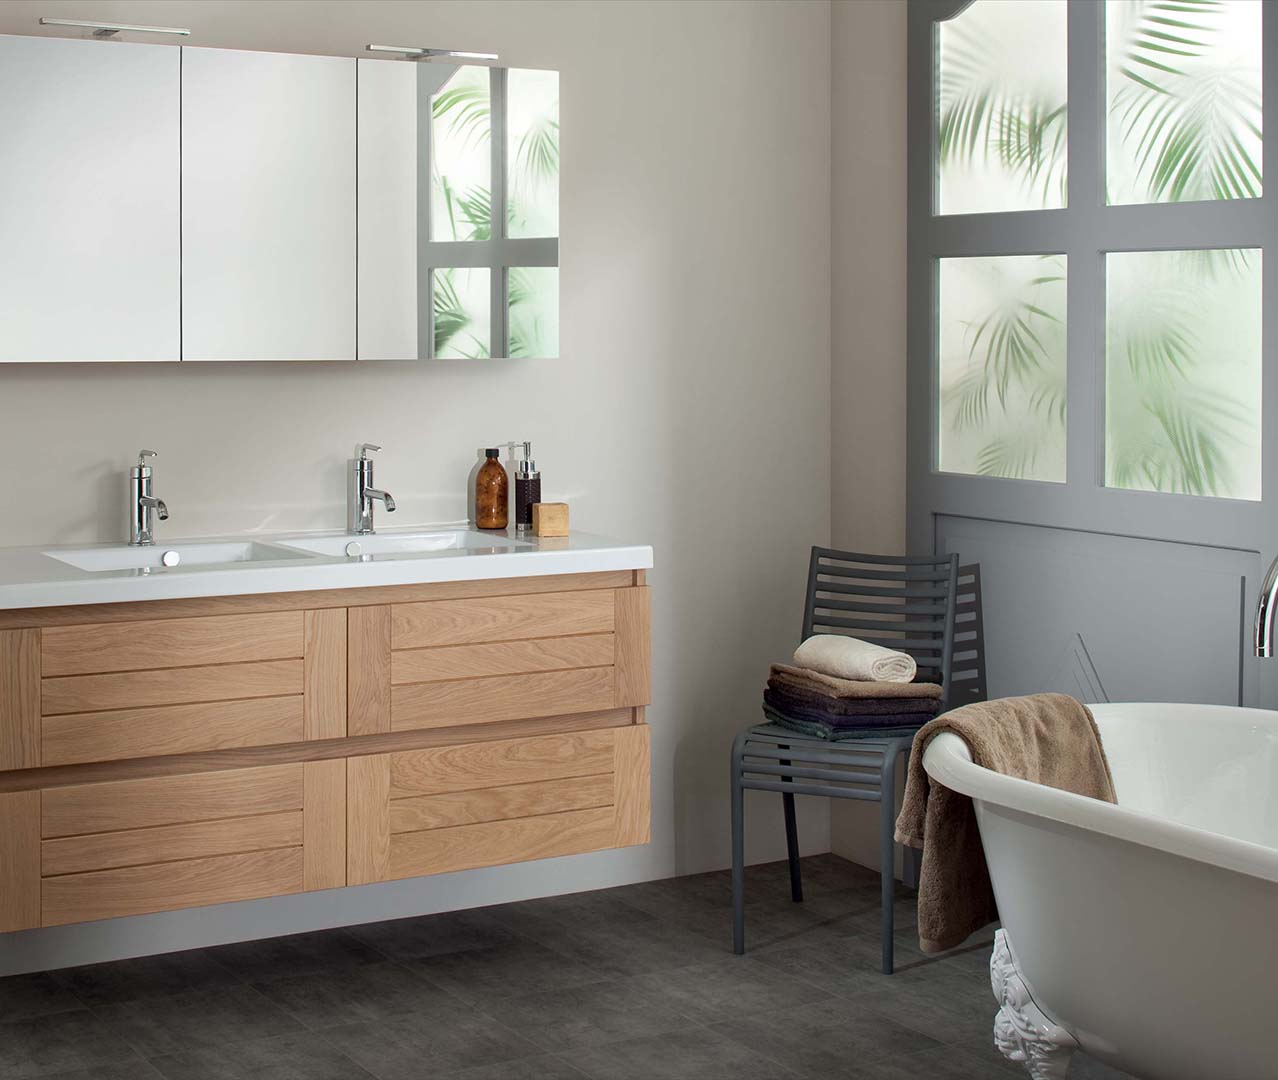 gamme lignum meuble salle de bain bois sanijura. Black Bedroom Furniture Sets. Home Design Ideas